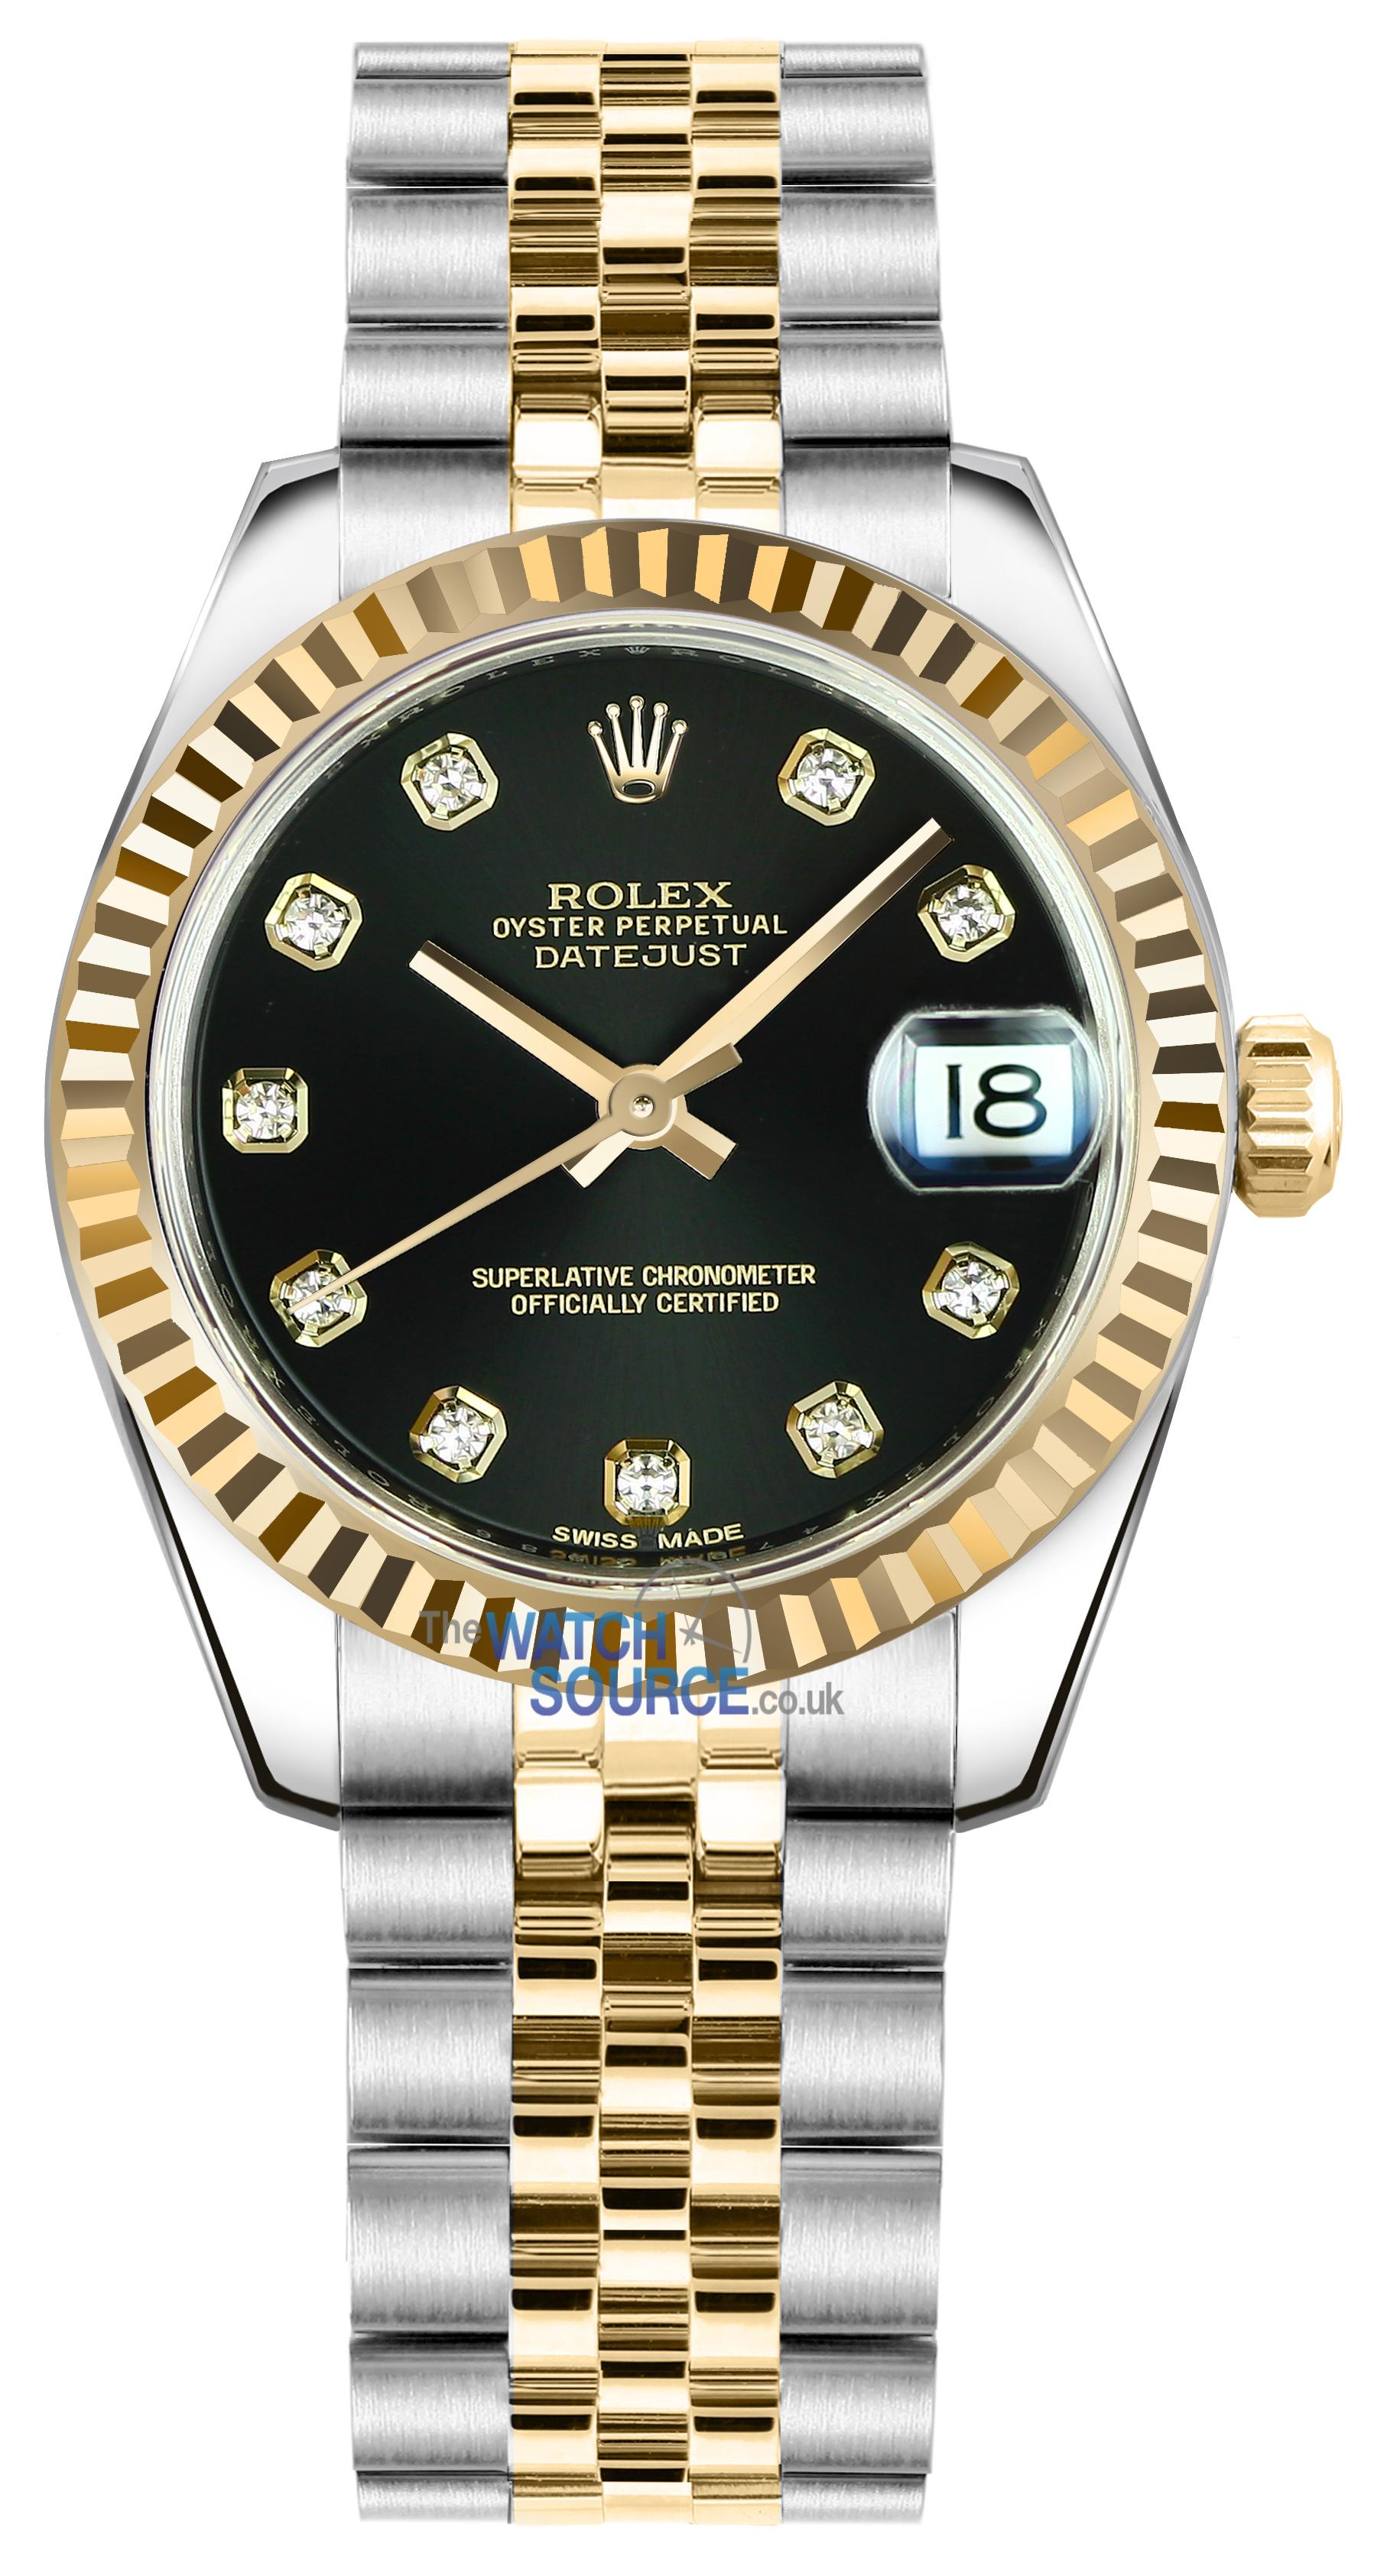 art news these museum are rolexdatejust watches lifestyle ref datejust com exhibited in the thinks rolex modern one hodinkee moma to s iconic most similar new century image of york